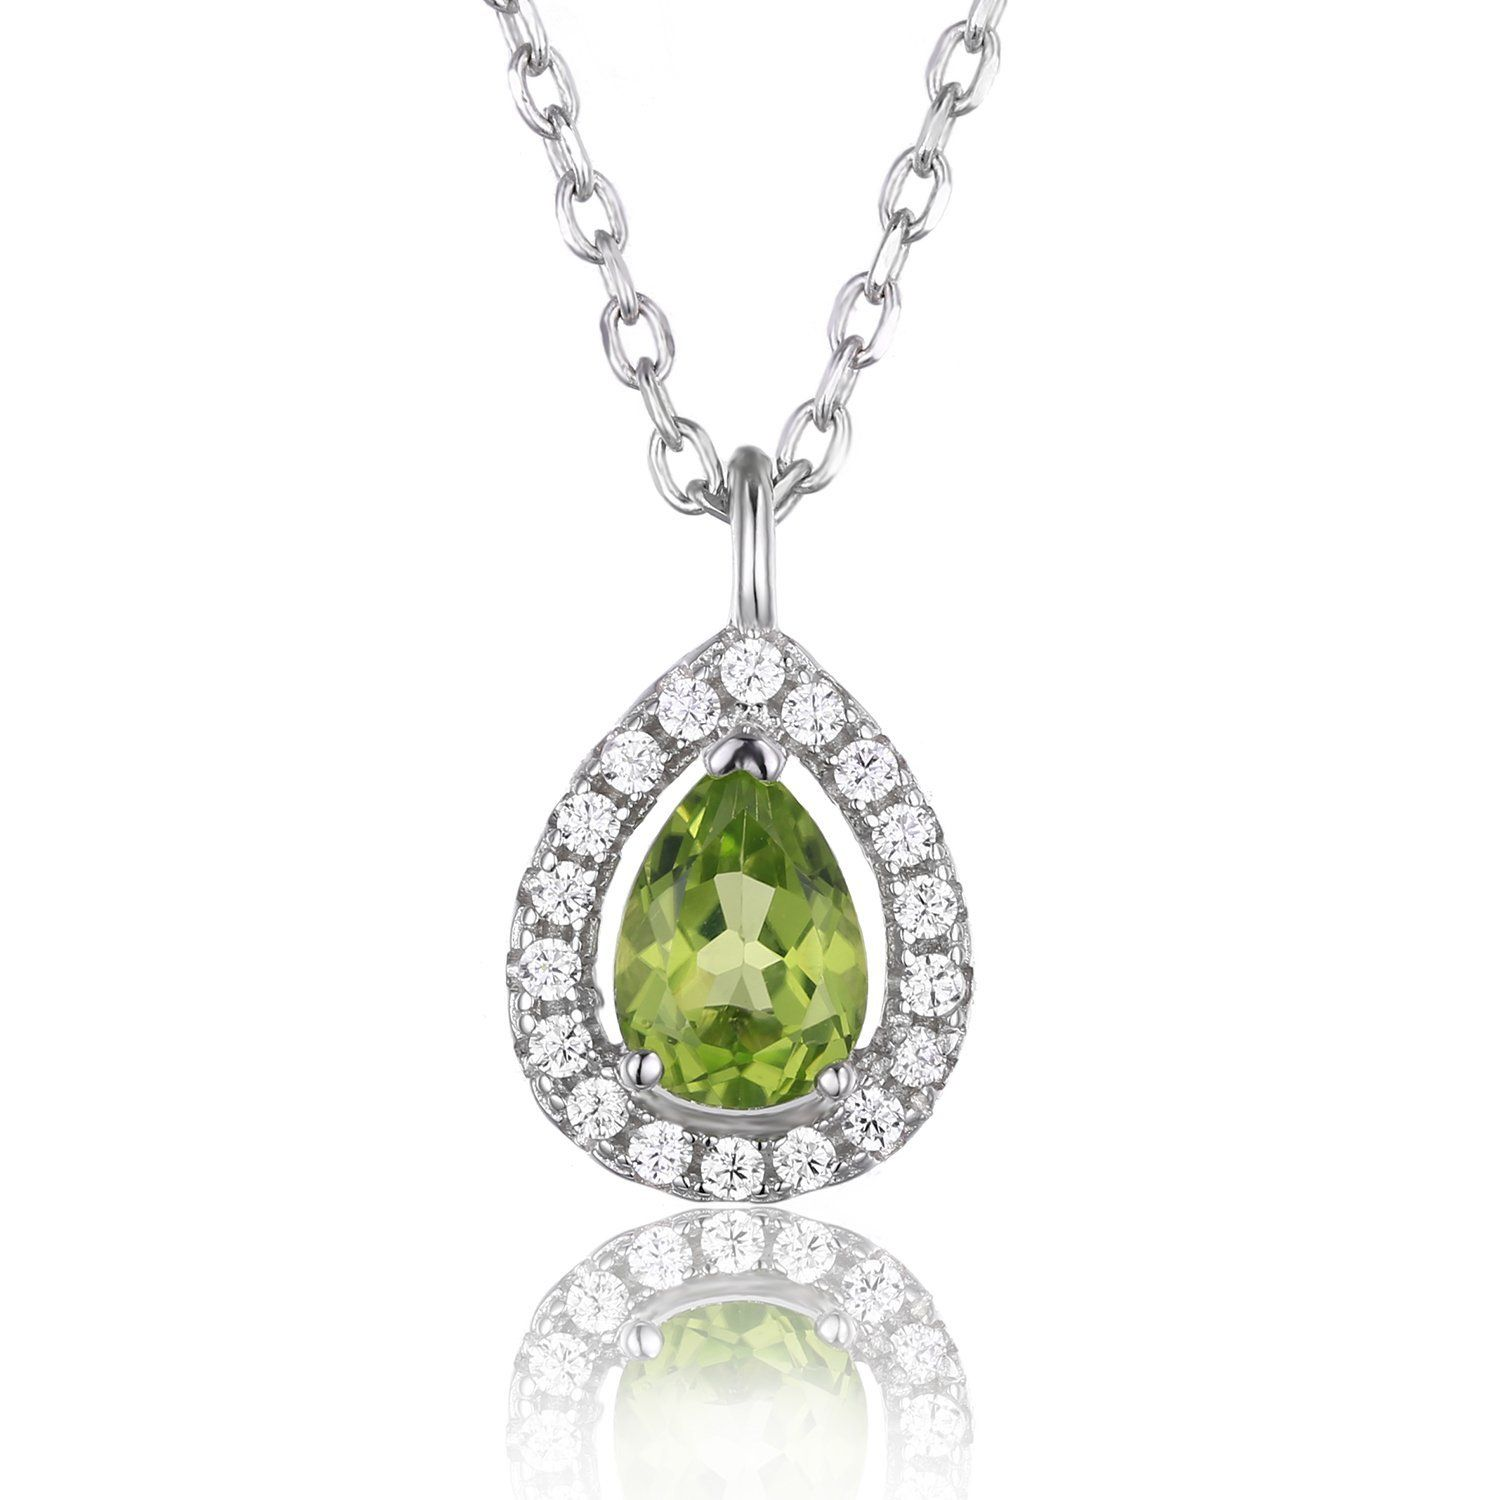 JewelryPalace Pear 0.8ct Natural Peridot 925 Sterling Silver Solitaire Pendant Necklace 18 Inches bRxXeuk33